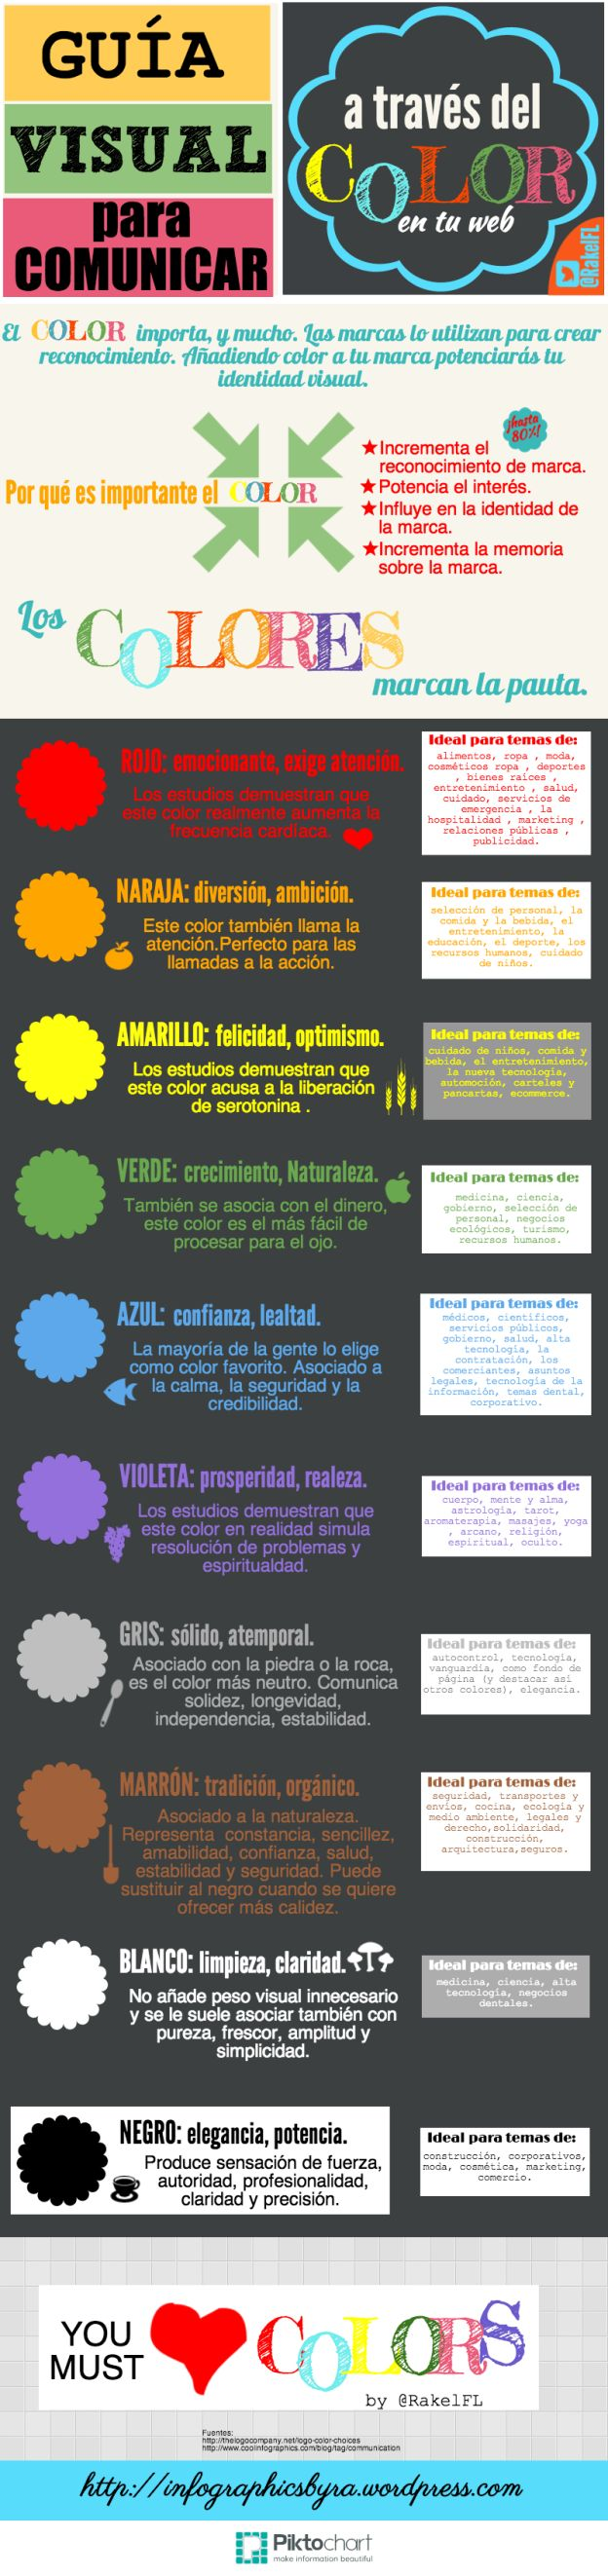 Guía visual para comunicar con el color en tu web #infografia #infographic #marketing